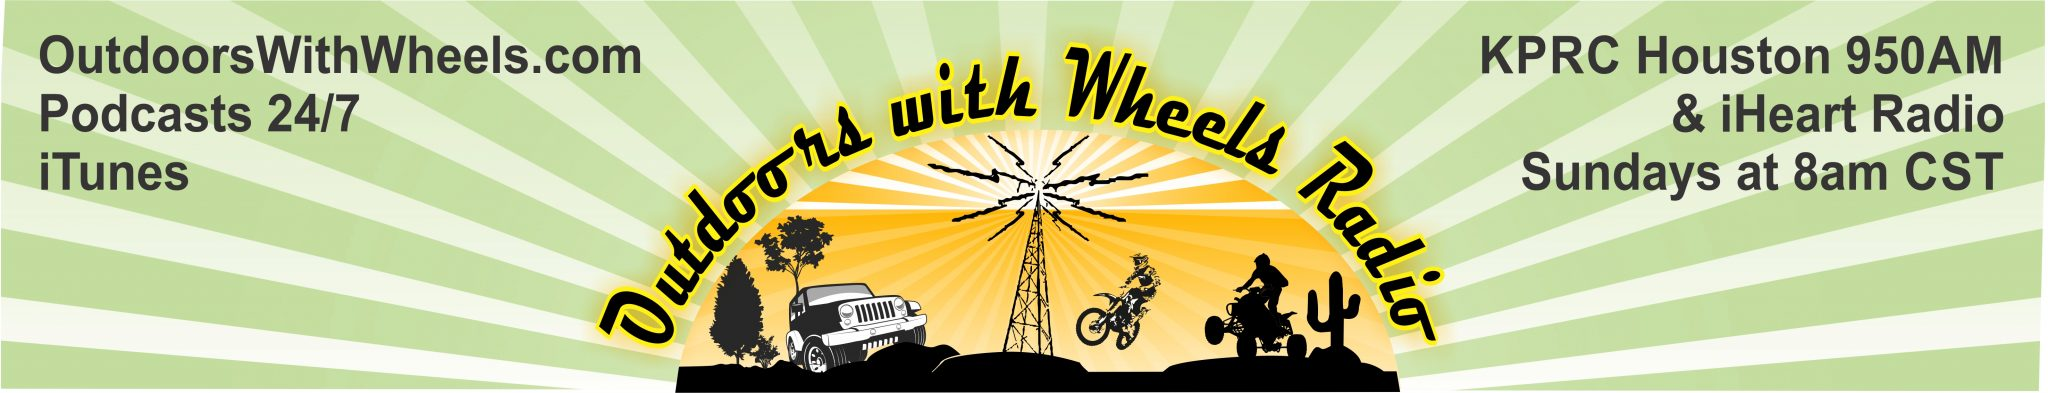 Wheeled Outdoor Adventure Sports Podcasts